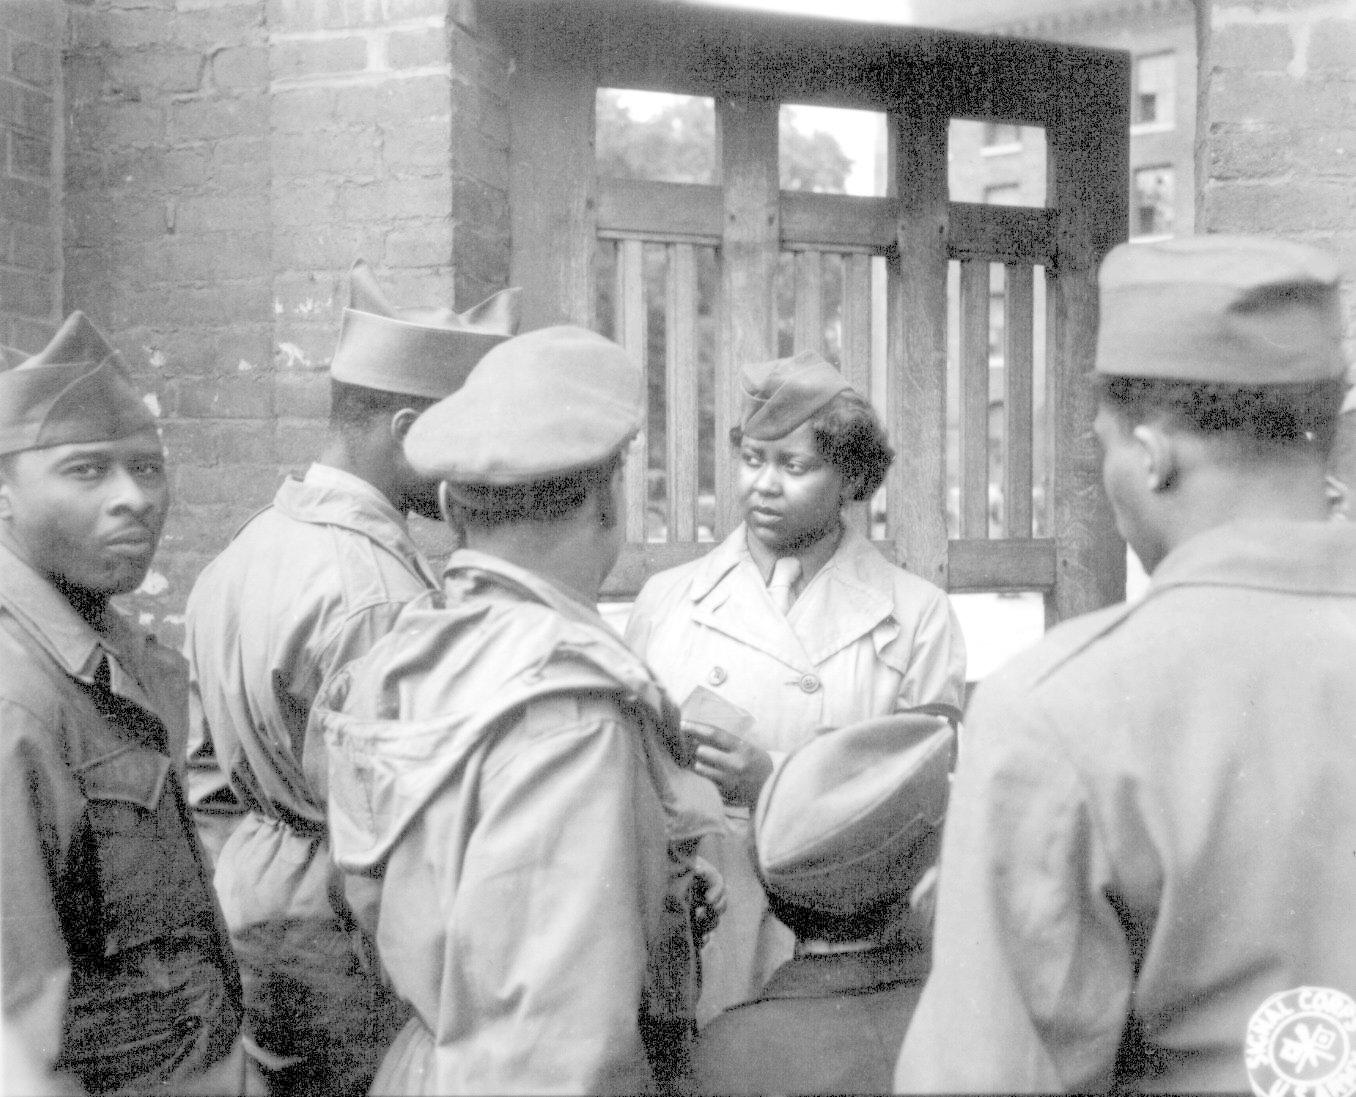 A group of African American soldiers are talking outside of a door during World War Two